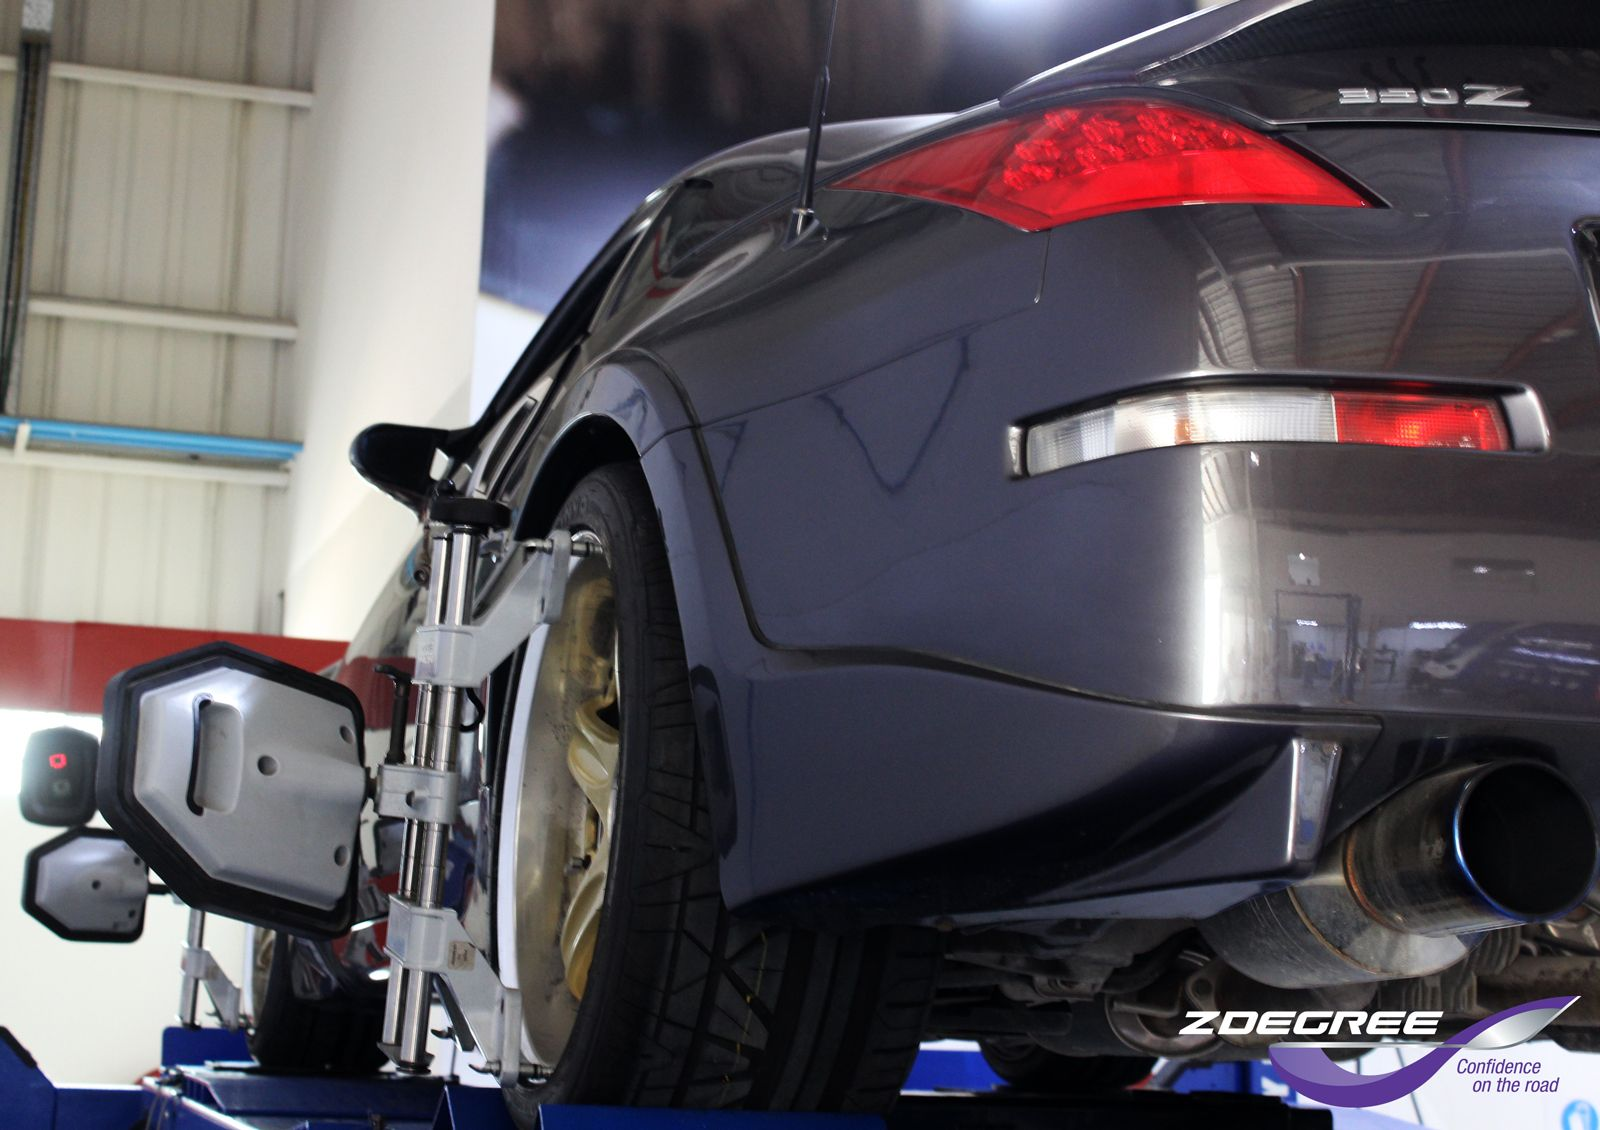 In Your Opinion Wheel Alignment Should Be Checked Every